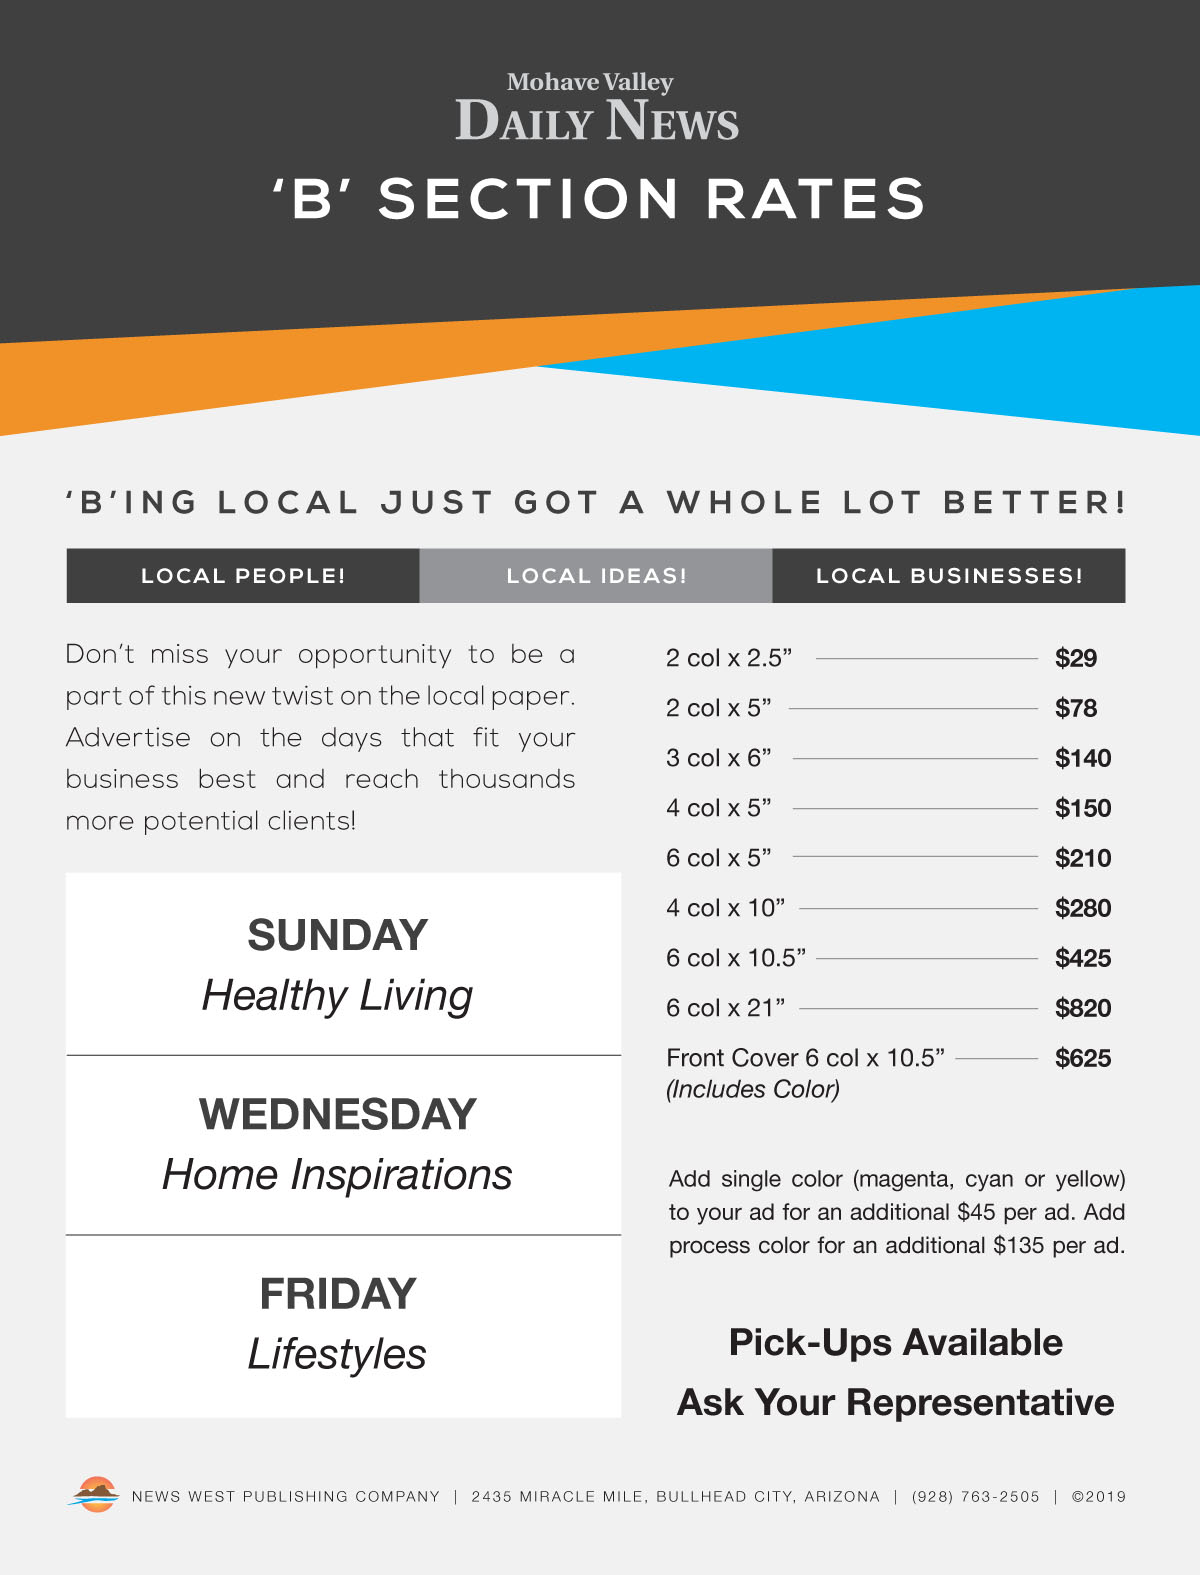 03 - B-Section Rates 2019